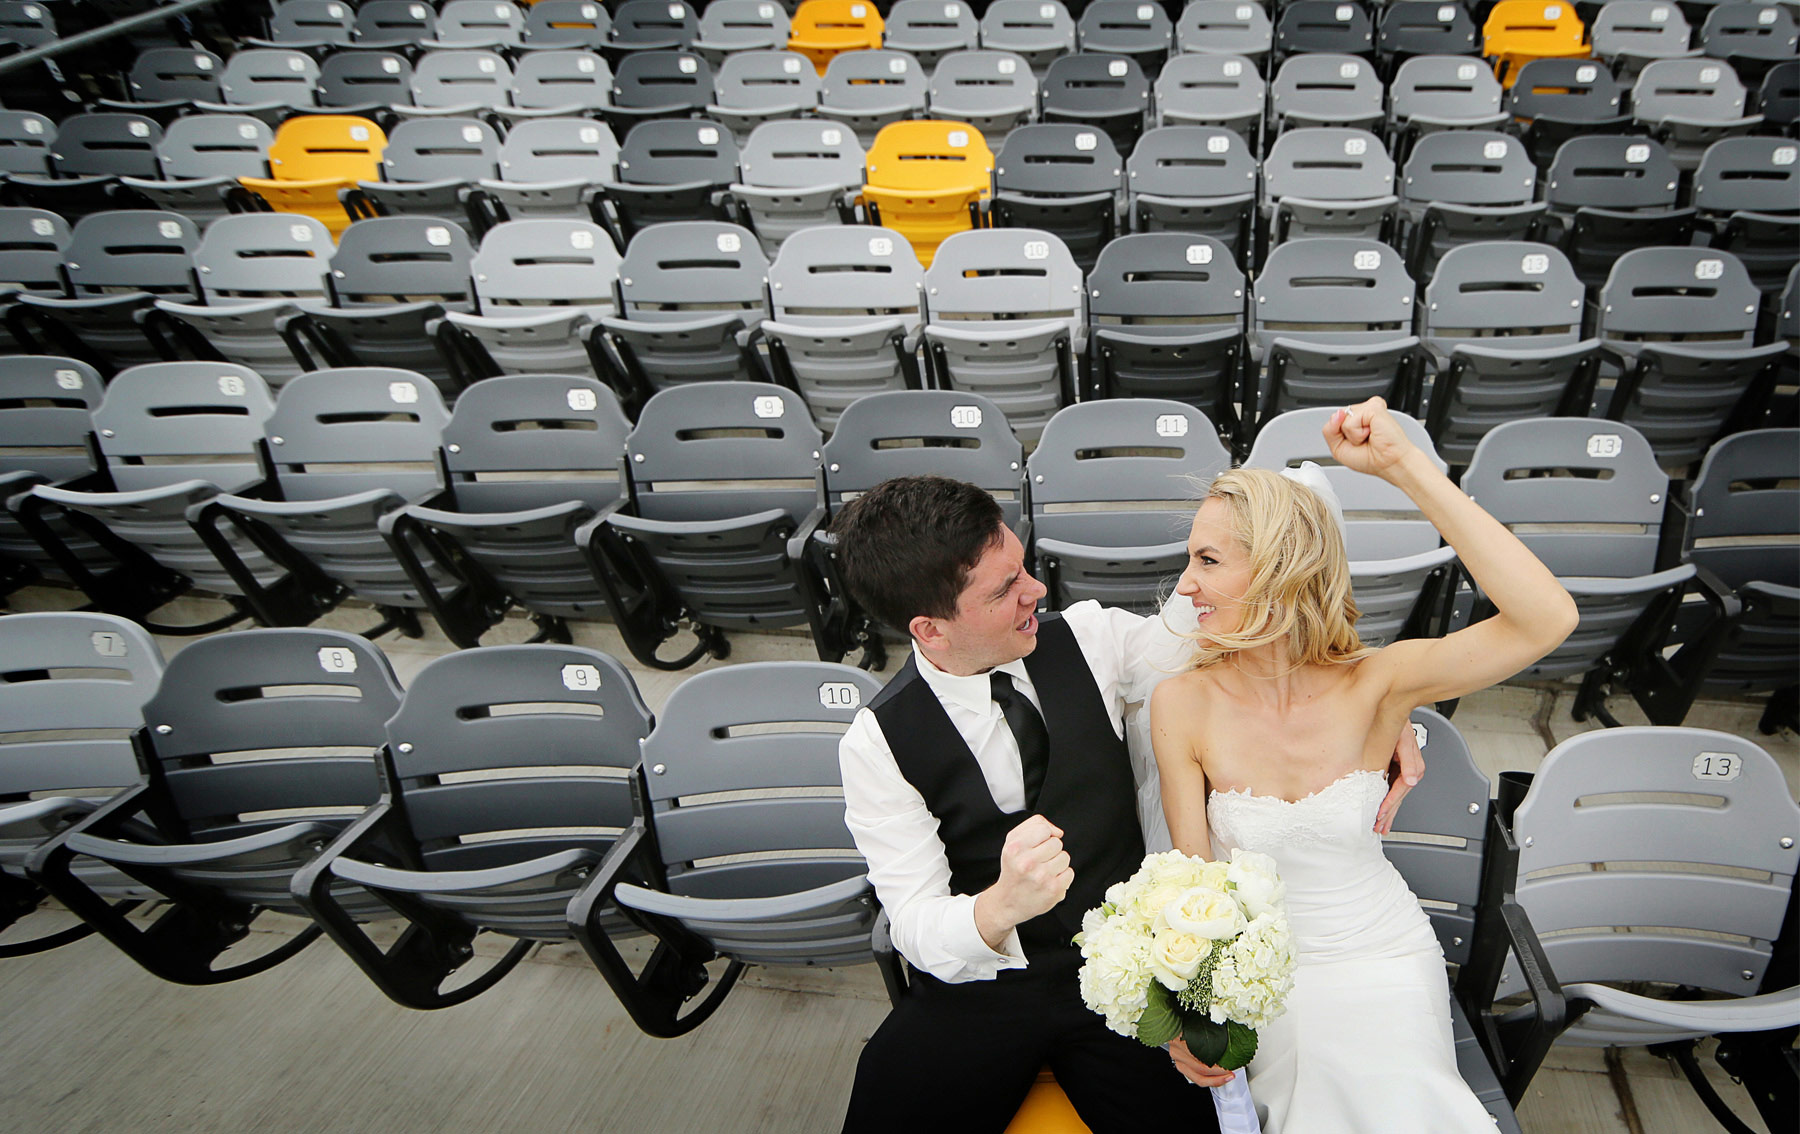 19-Saint-Paul-Minnesota-Wedding-Photographer-by-Andrew-Vick-Photography-Summer-CHS-Field-Stadium-Bride-Groom-Dress-Baseball-Saints-Cheering-Flowers-Laura-and-Tim.jpg